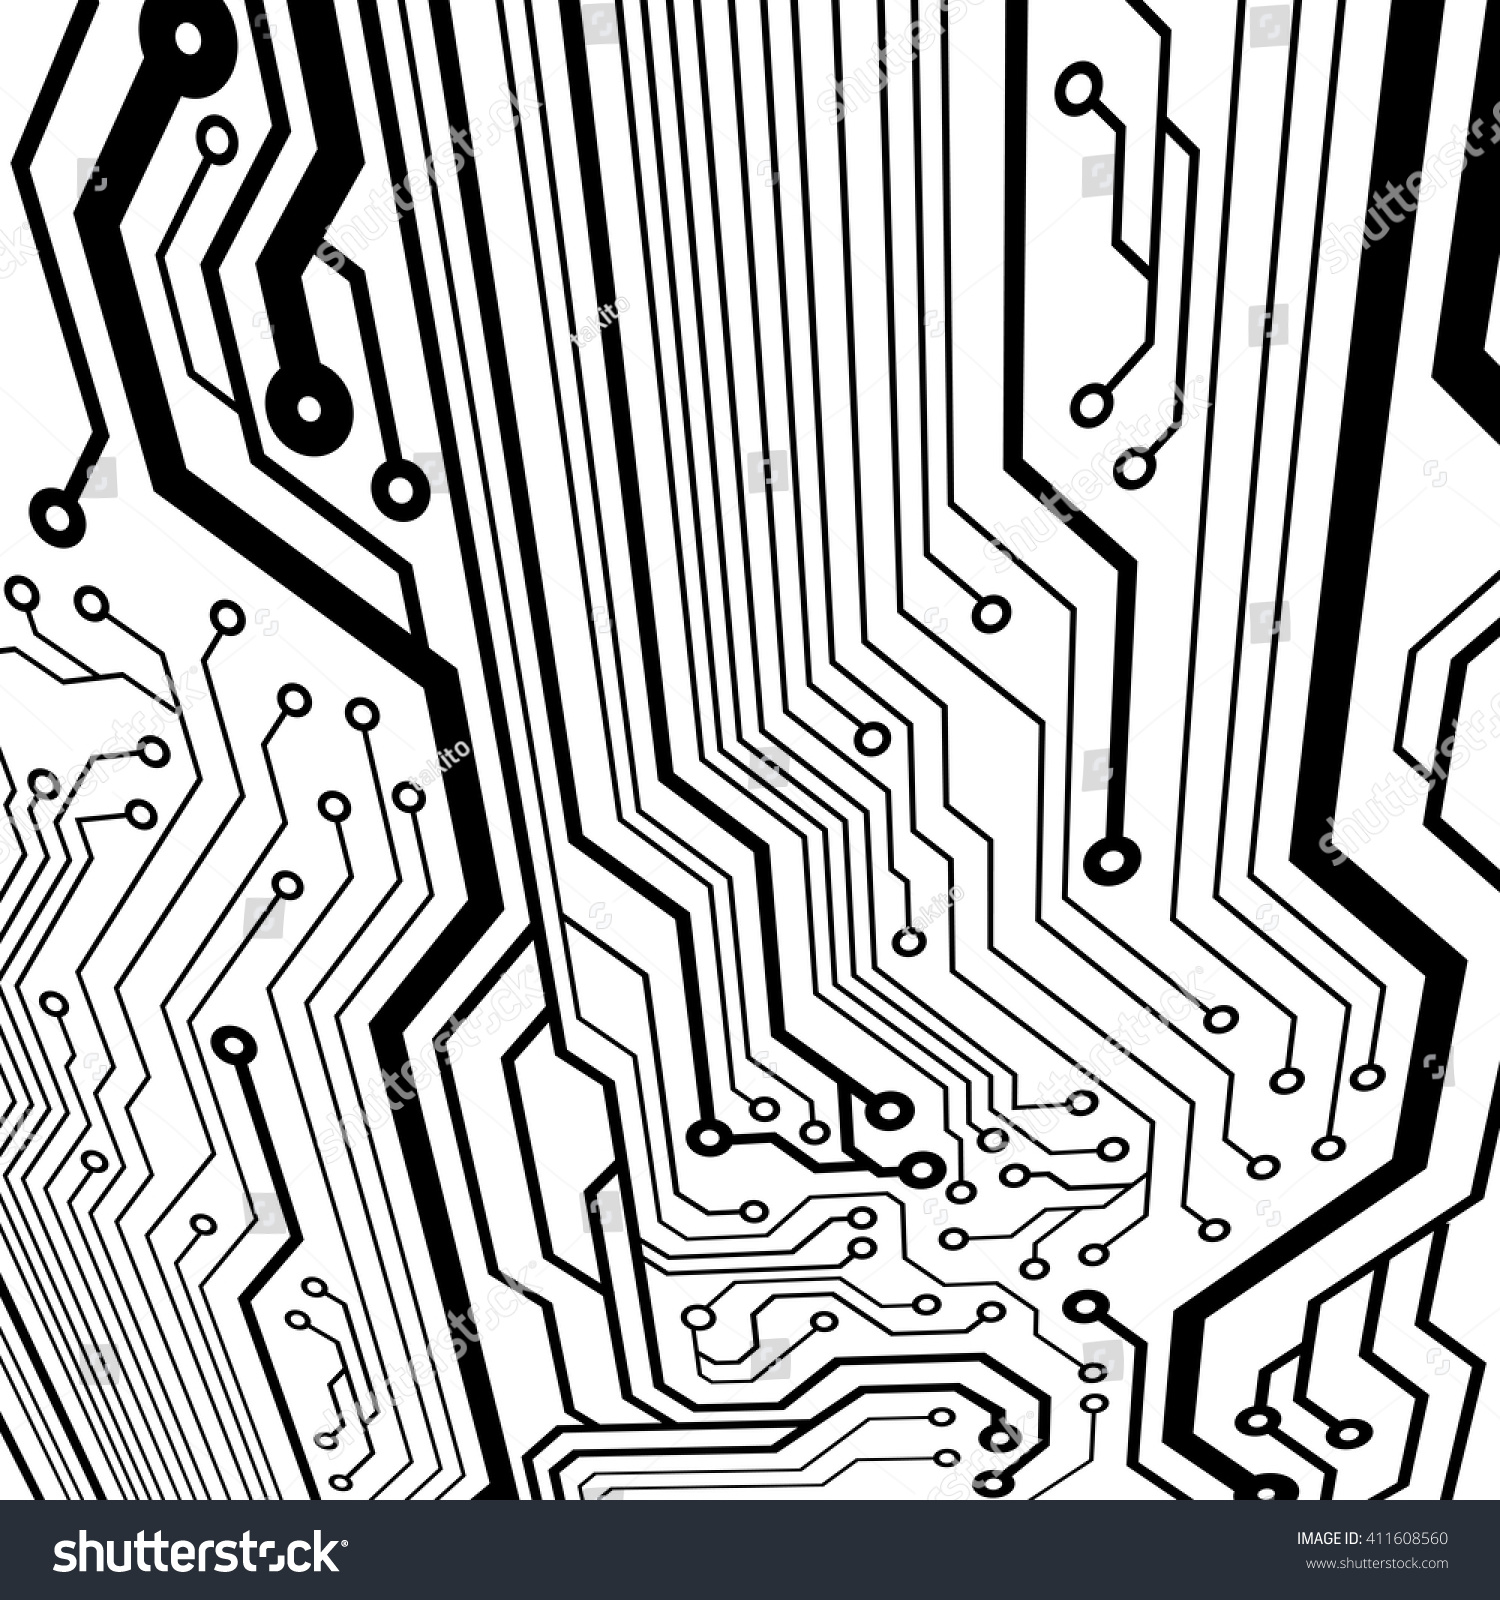 Abstract Simple Circuit Board Perspective View Stock Vector Royalty In Eps10 Curves